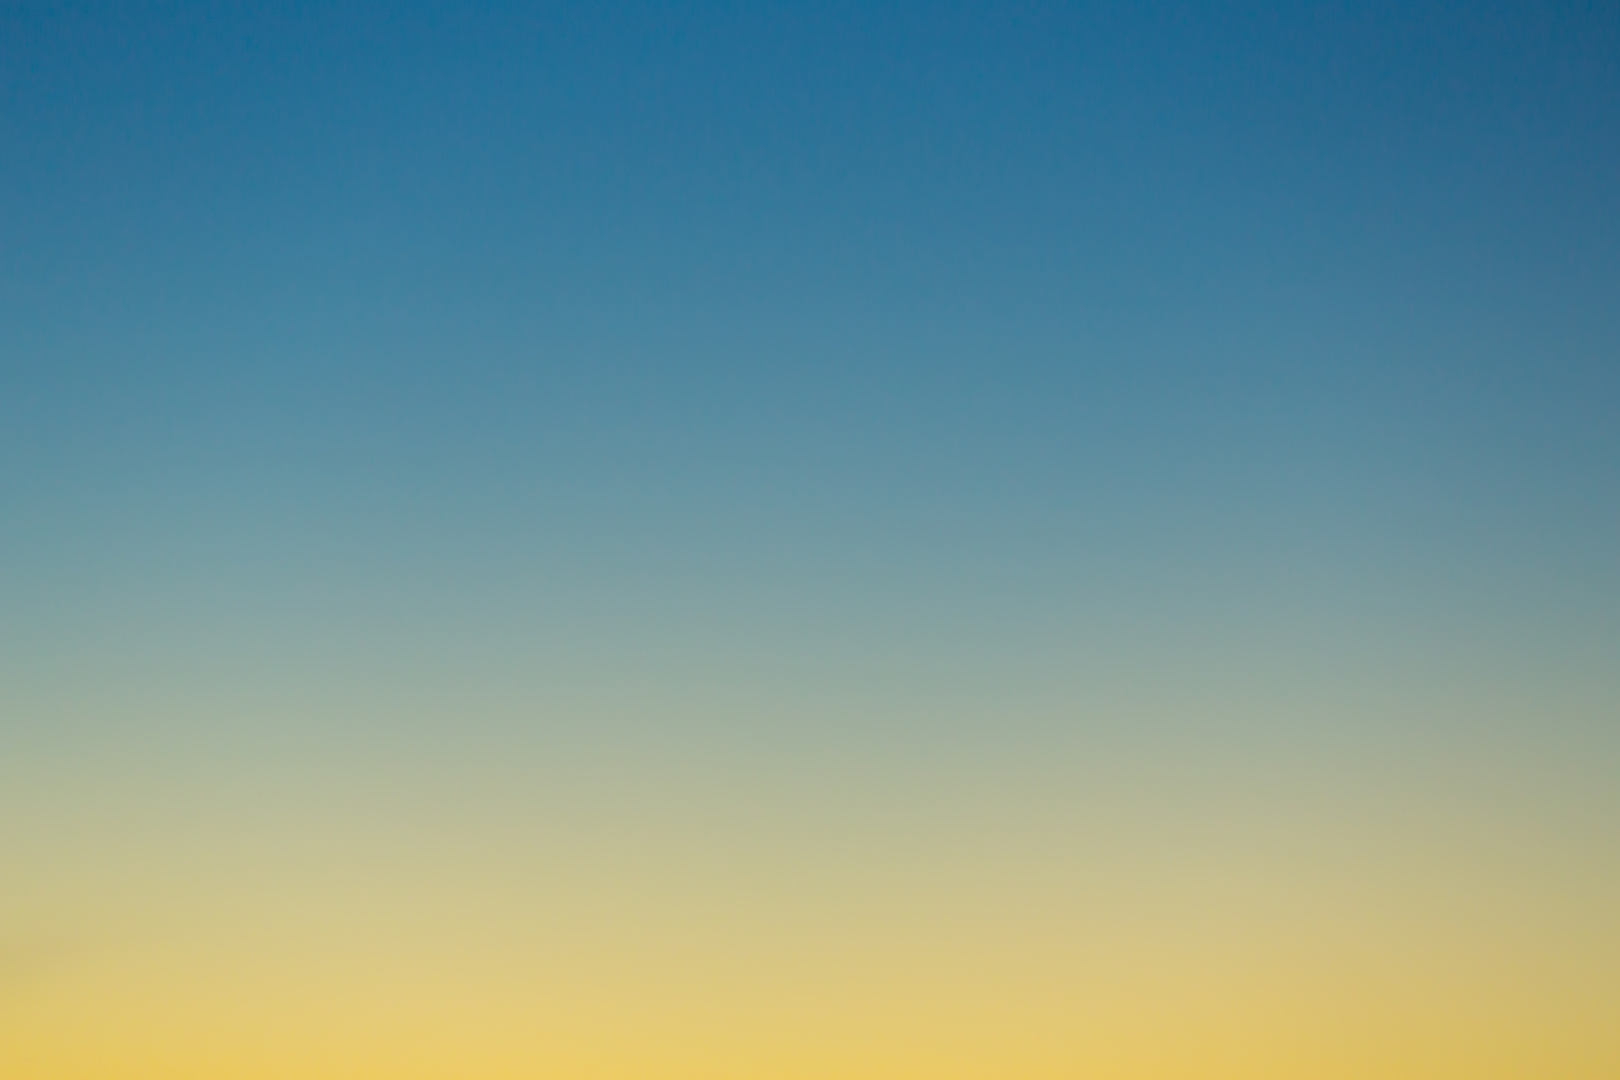 Sunset_Gradient_17